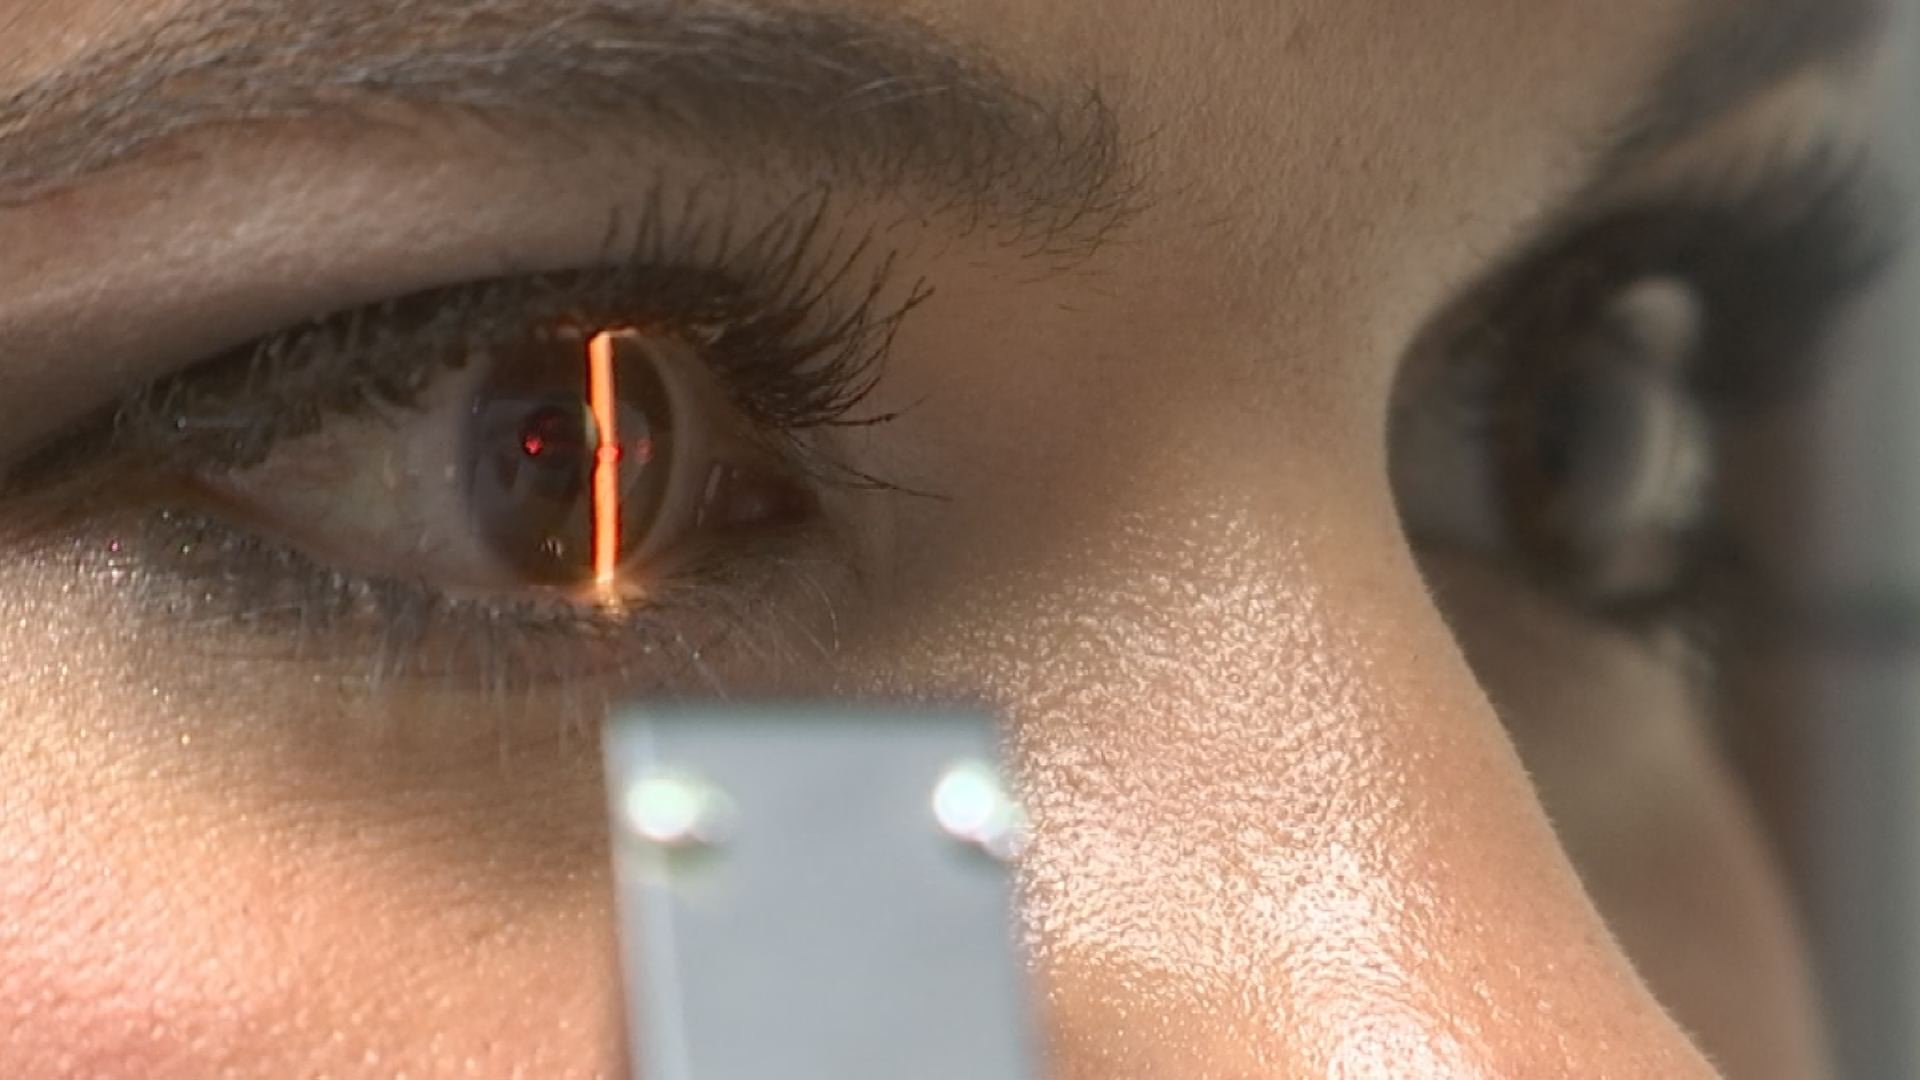 Signs of eye damage following eclipse